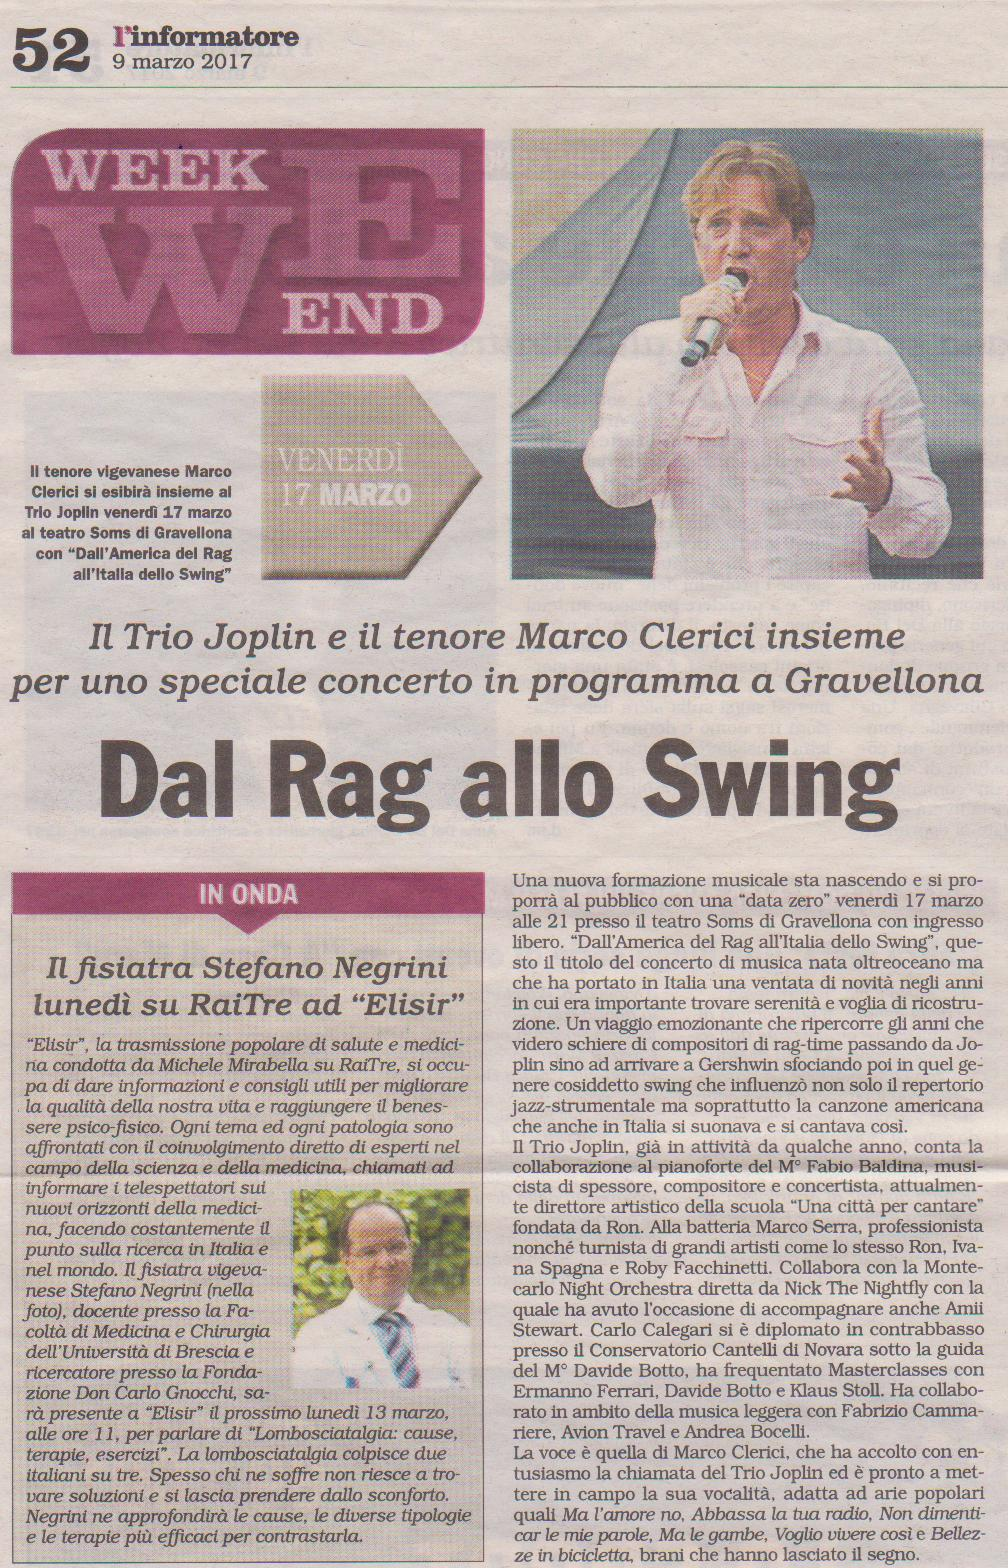 Dall'America del Rag all'Italia dello Swing